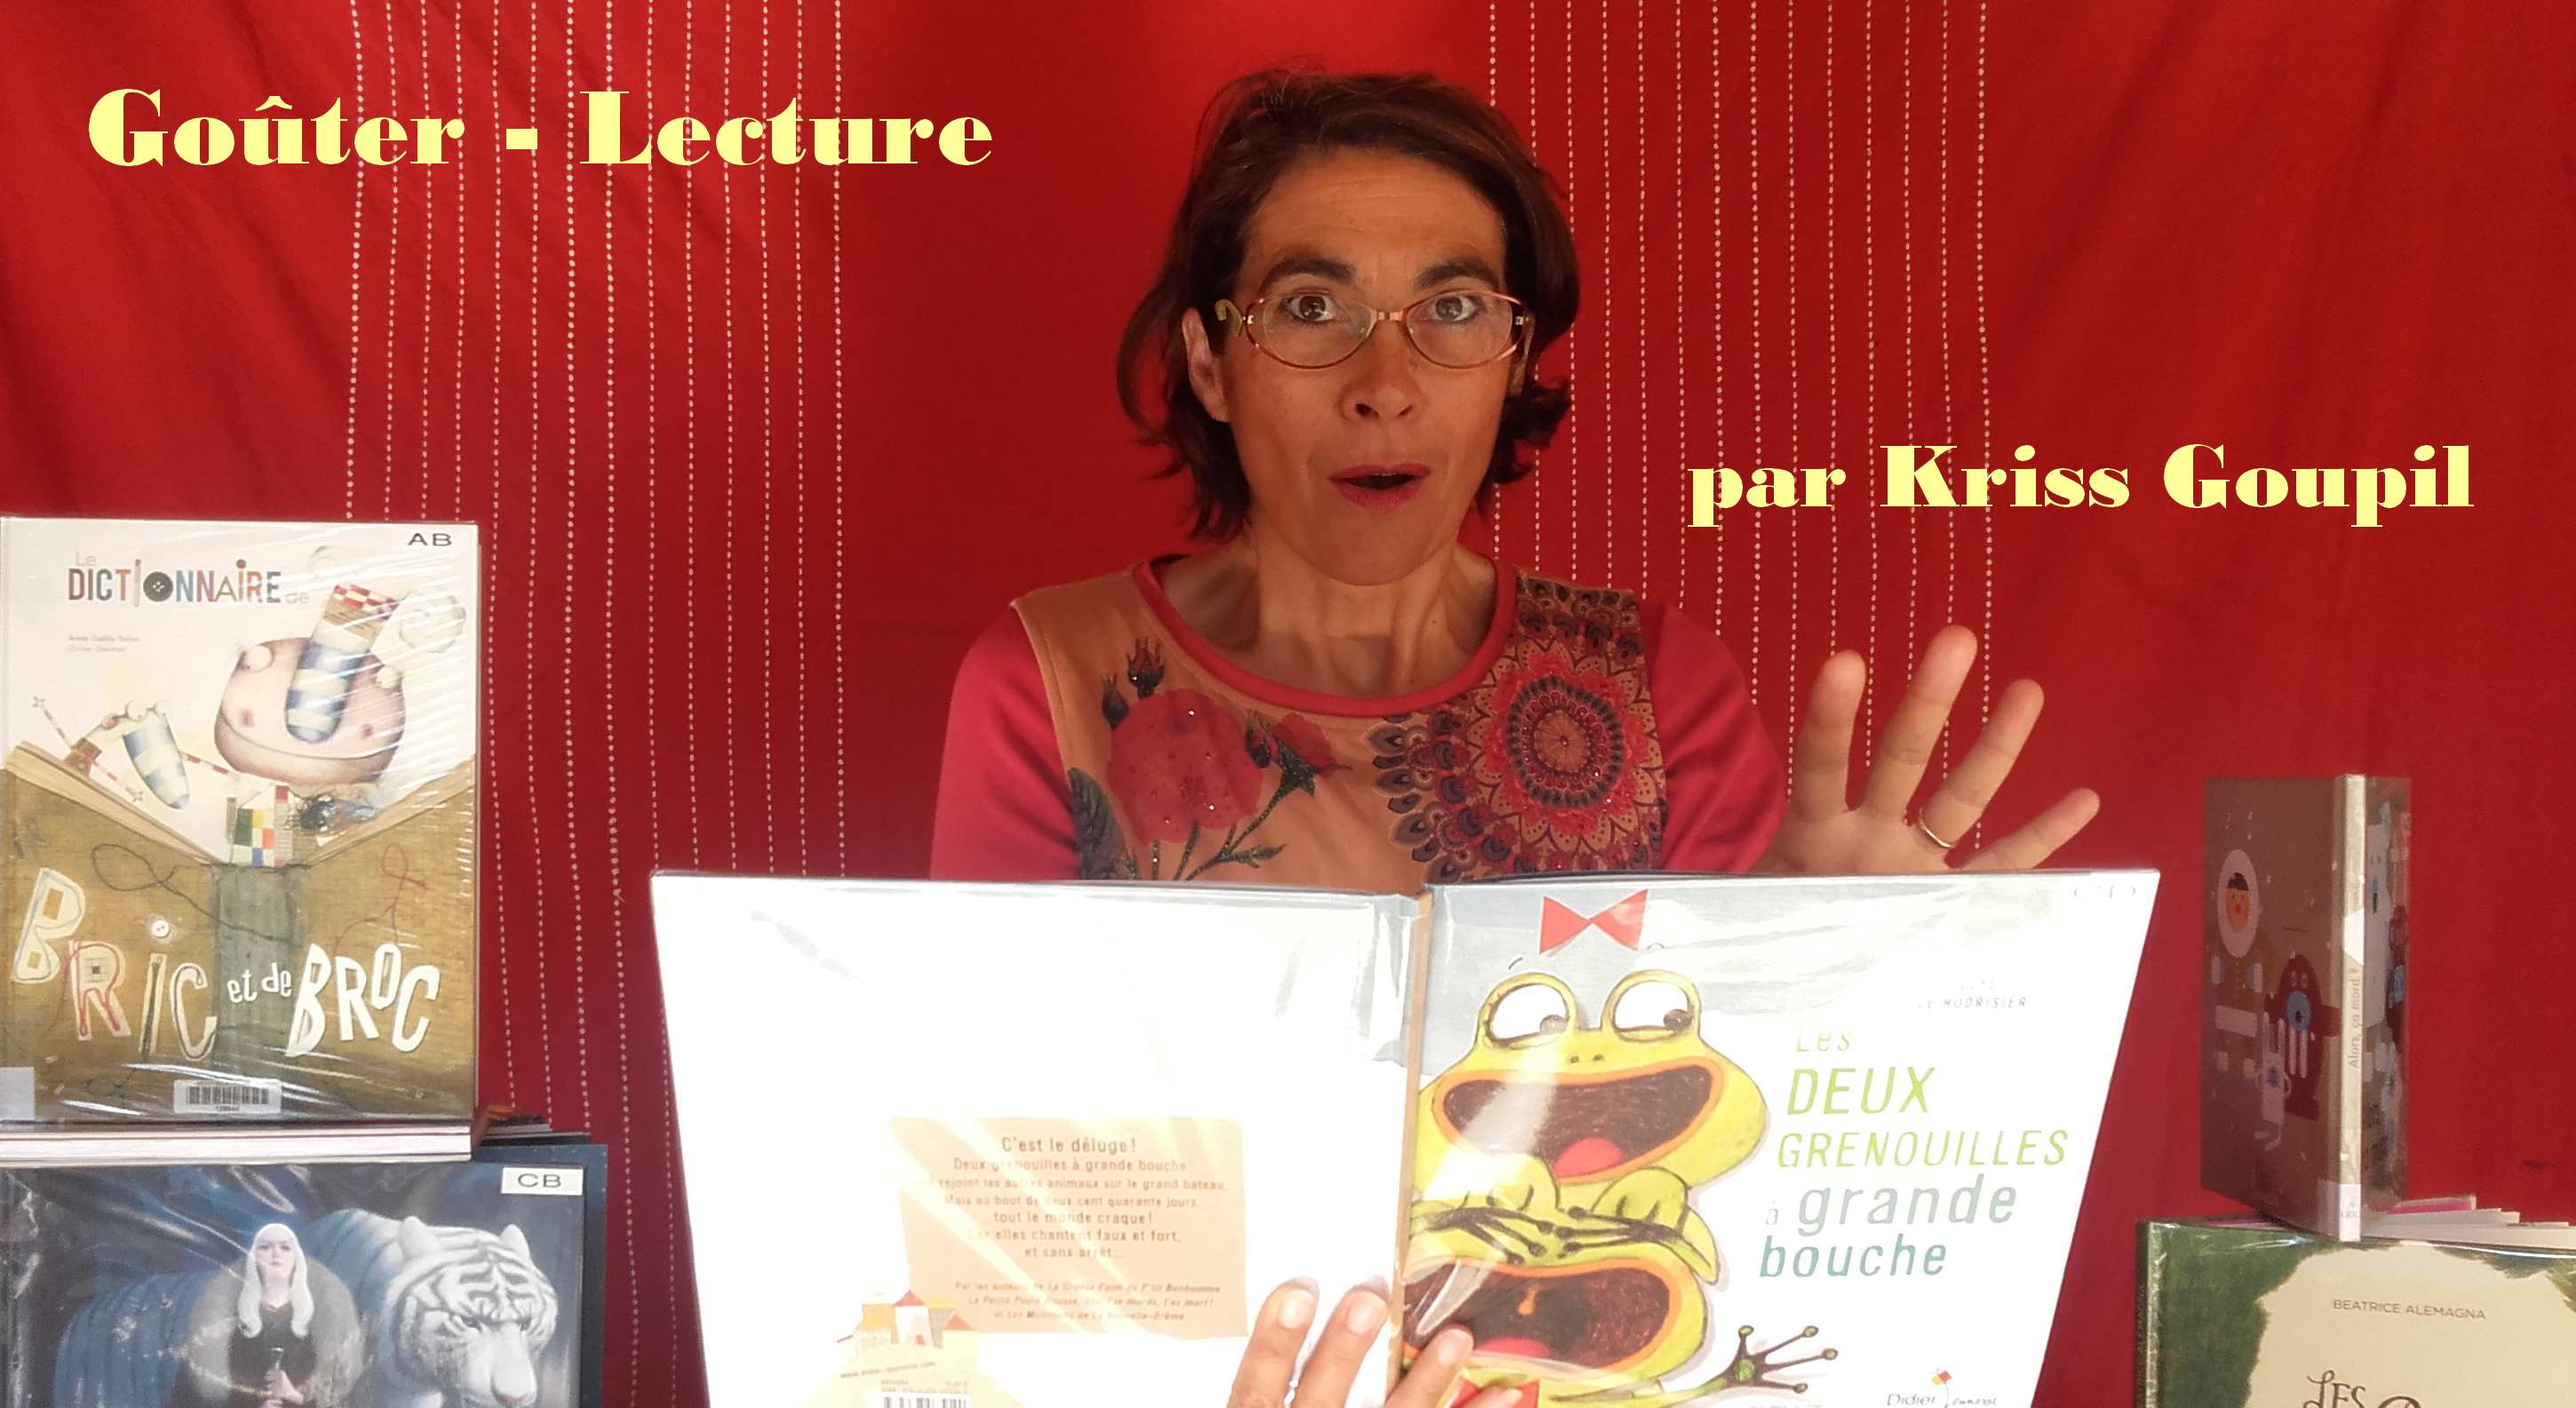 gouter_lecture_kriss